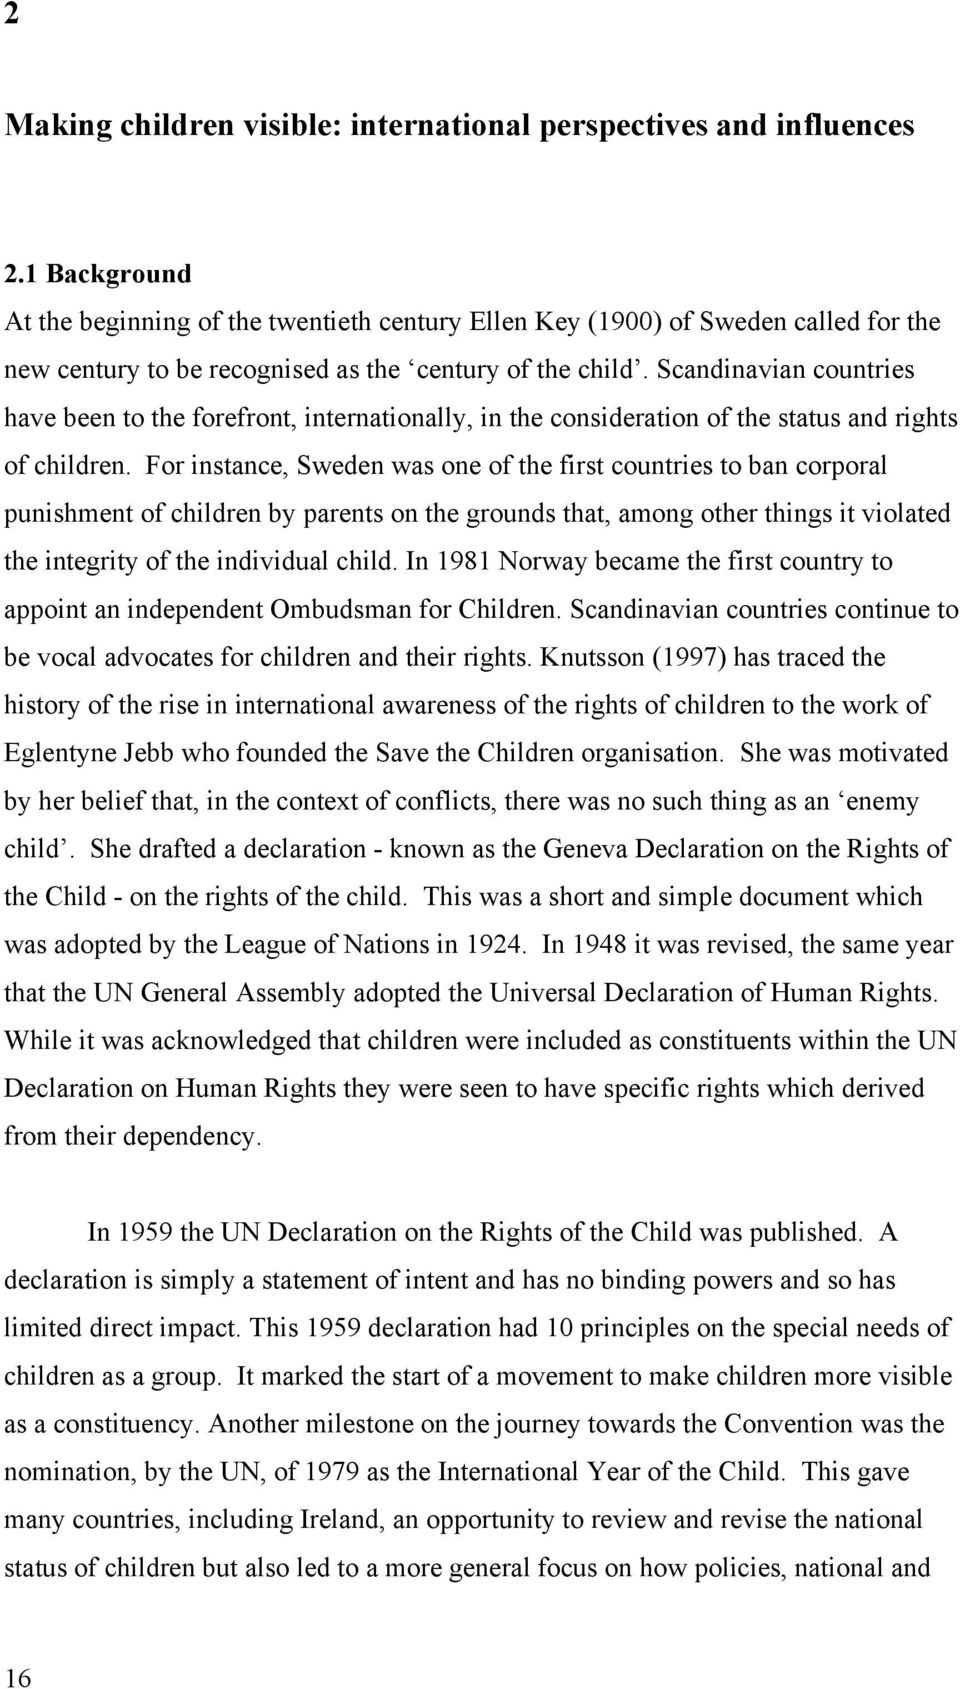 Scandinavian countries have been to the forefront, internationally, in the consideration of the status and rights of children.